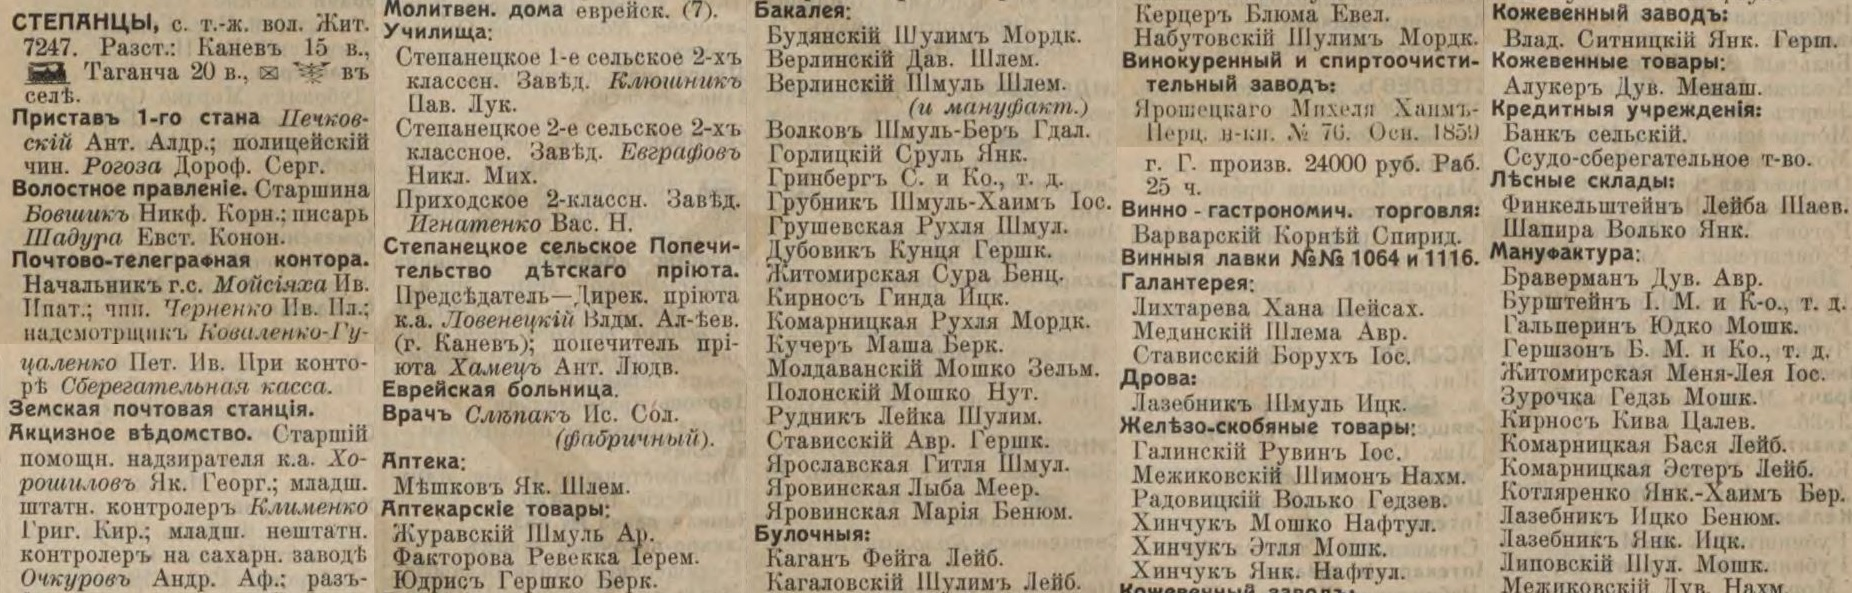 Stepantsy entrepreneurs list from Russian Empire Business Directories by 1913, part 1